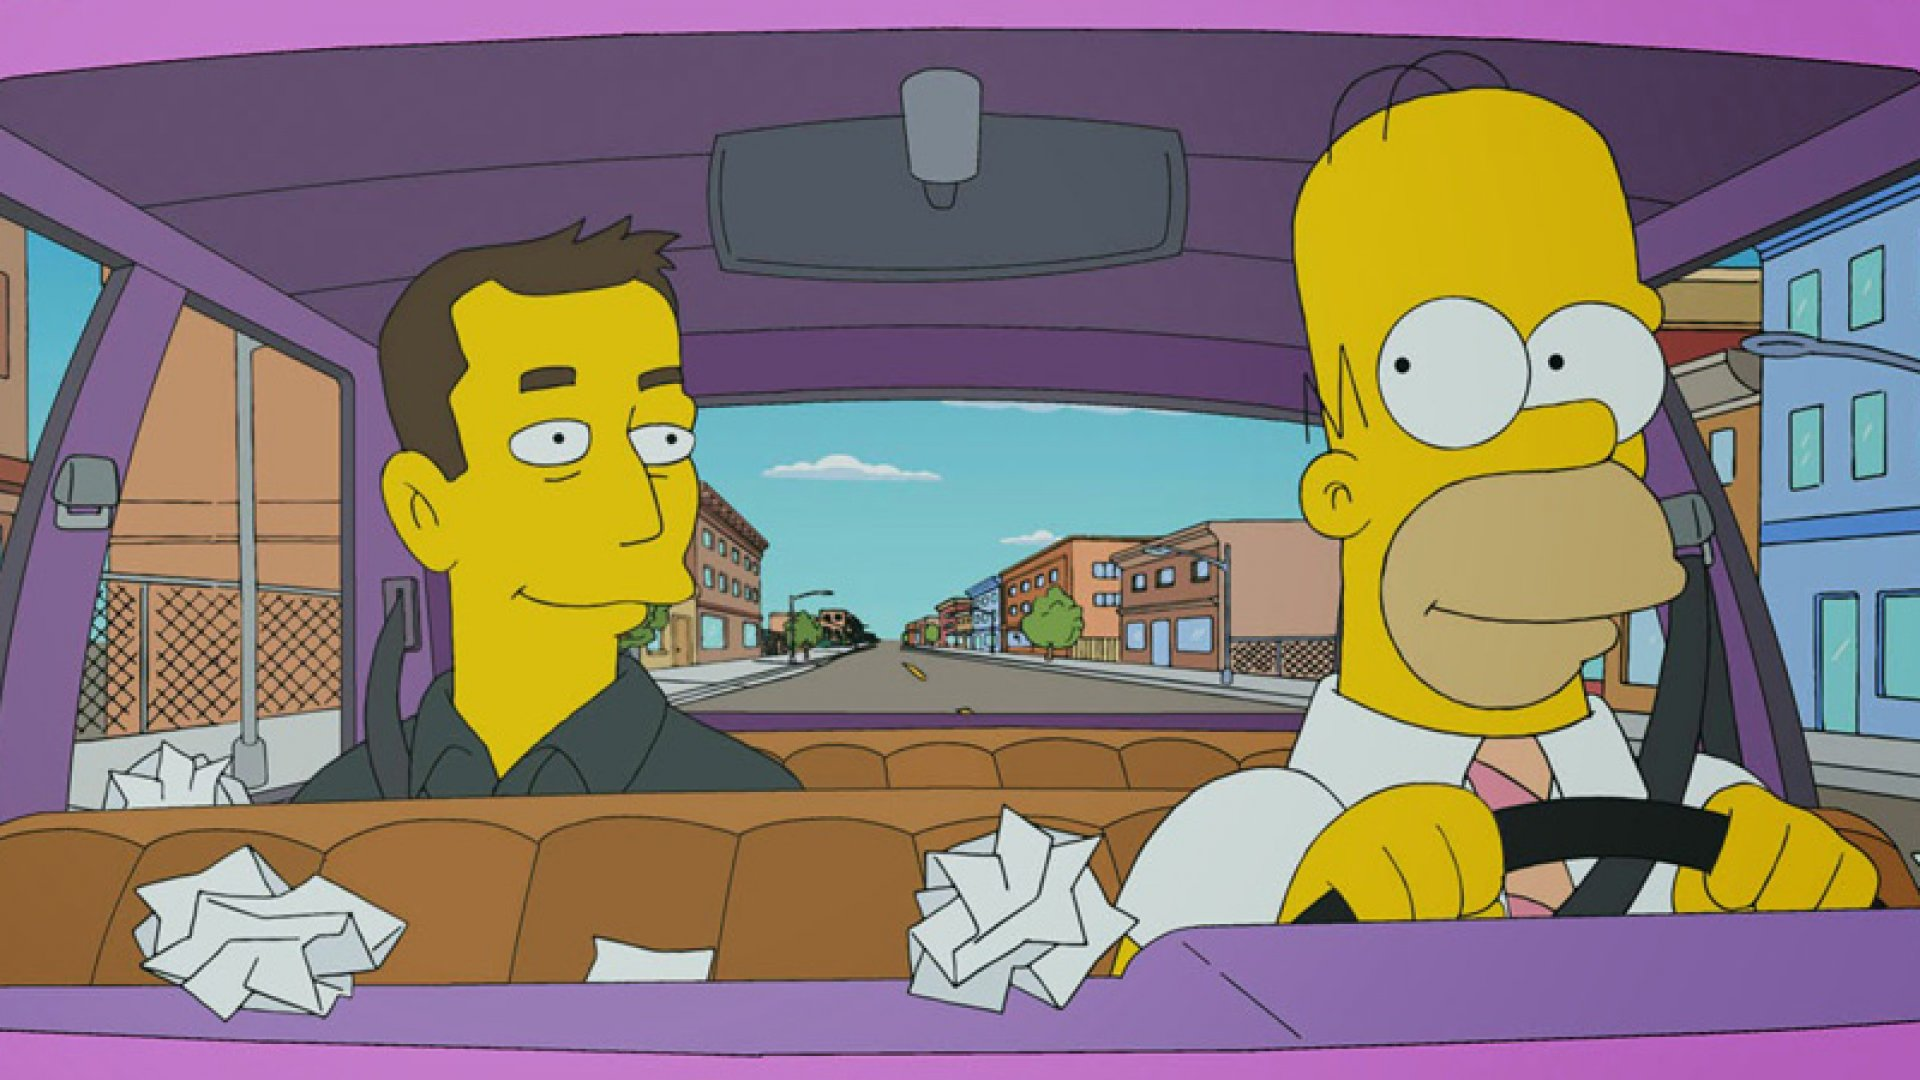 Elon Musk Has a Blast Riffing on 'The Simpsons'